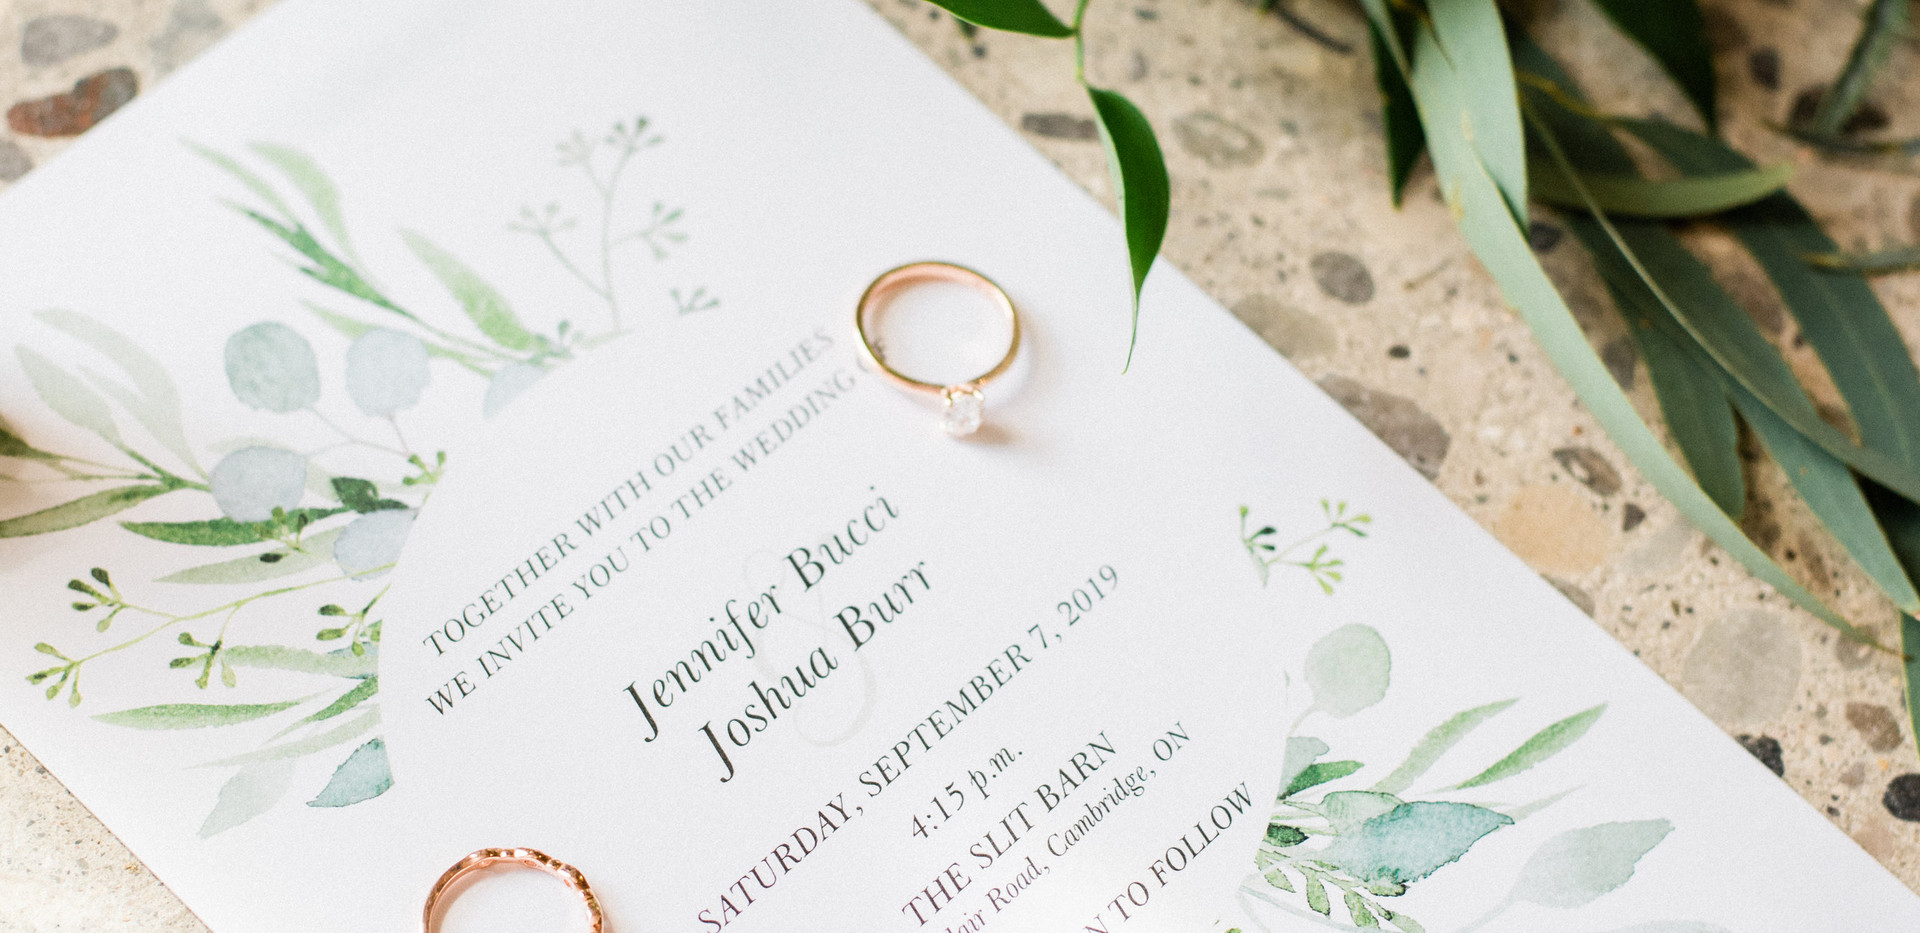 invitation flat lay with wedding rings with bouquet laid beside